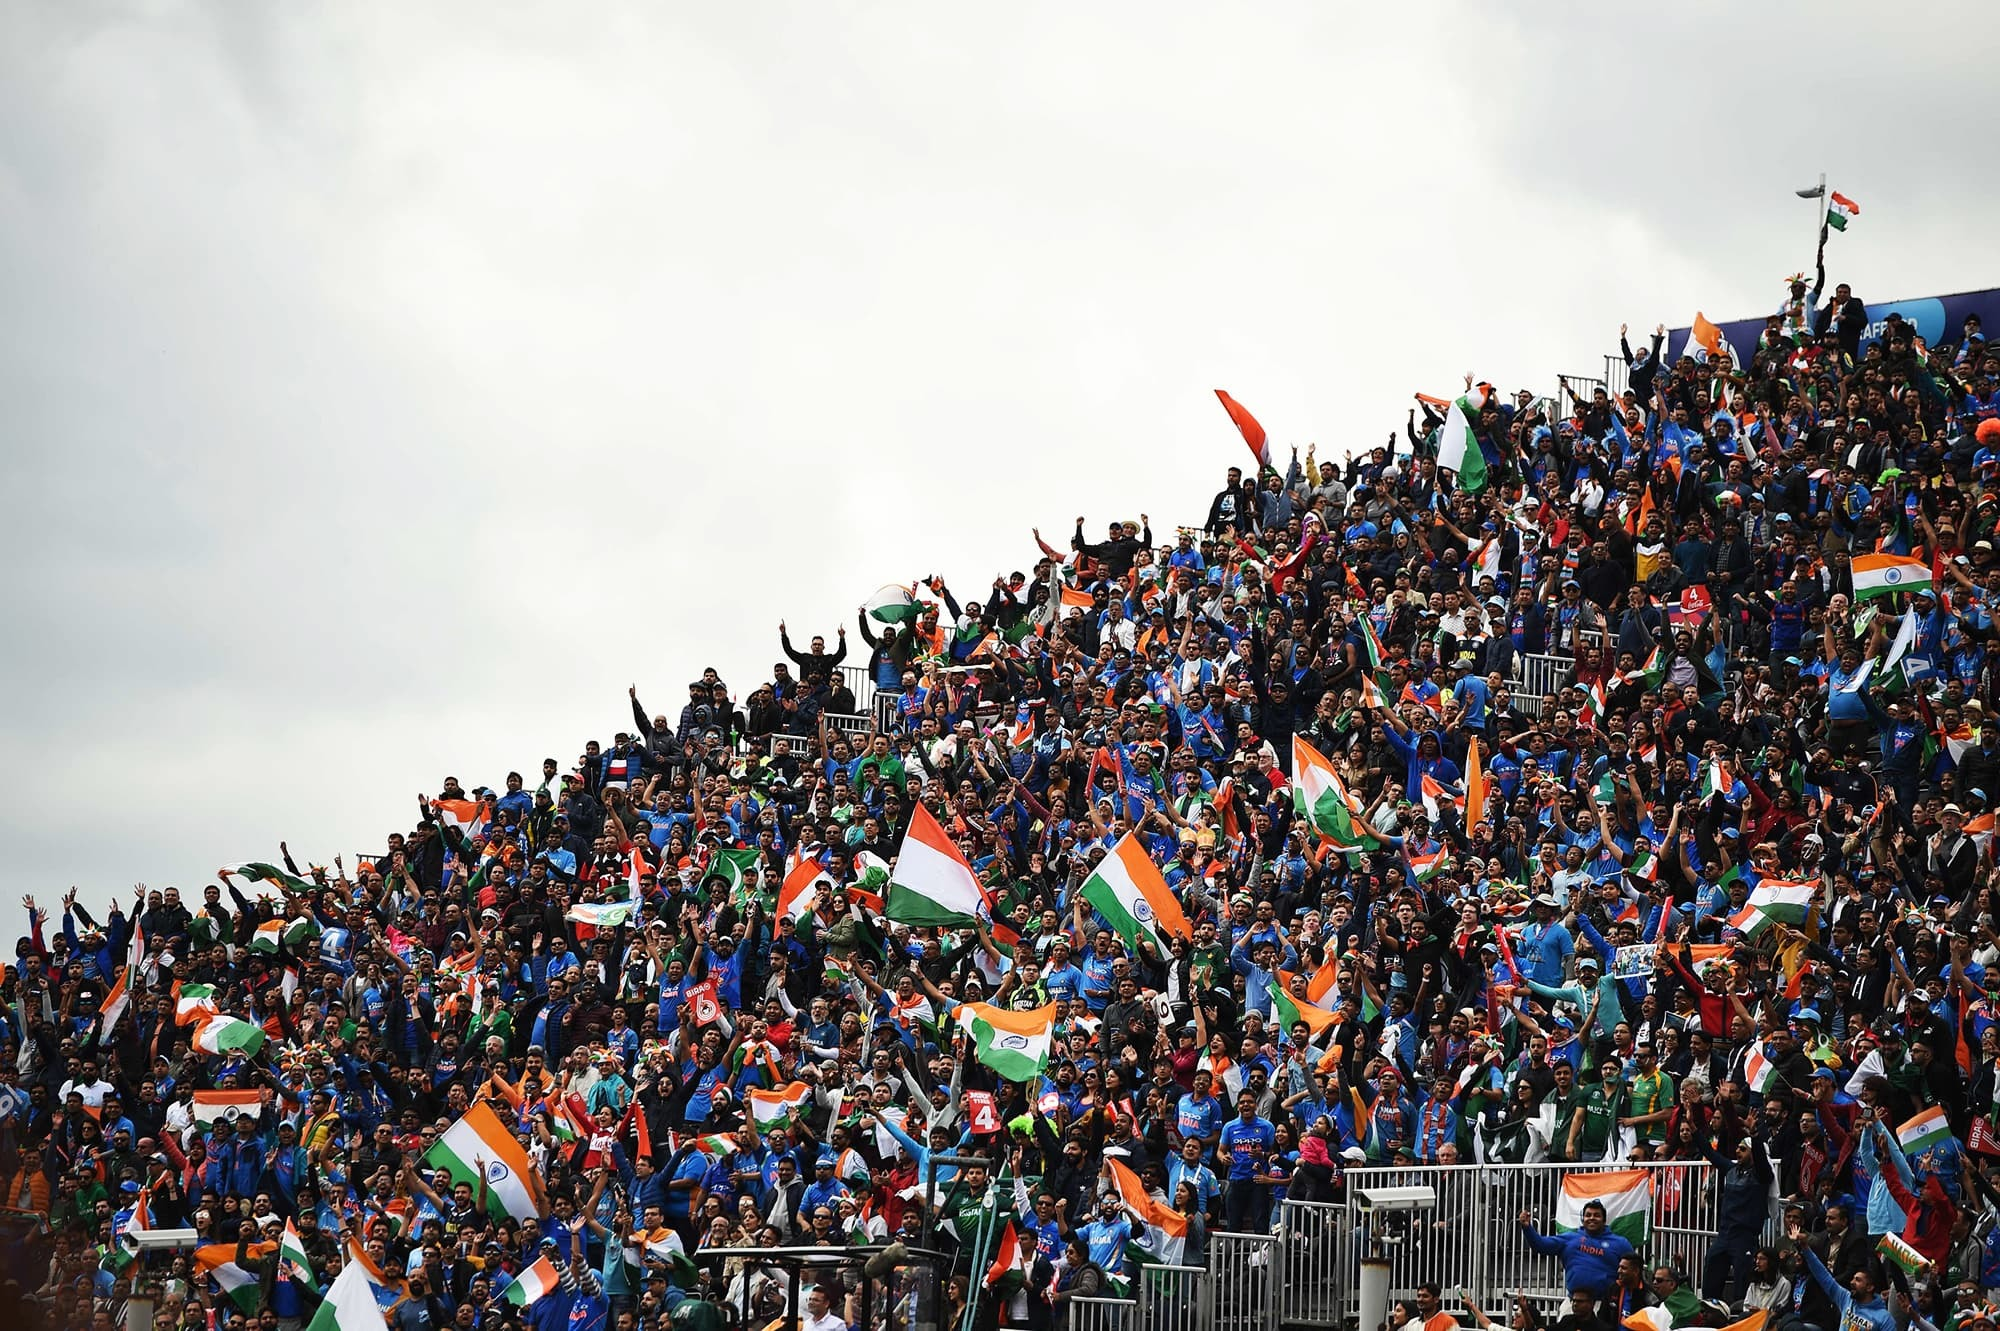 India and Pakistan supporters cheer on their teams during the 2019 Cricket World Cup group stage match between India and Pakistan at Old Trafford in Manchester, north-west England, on June 16, 2019. (Photo by Oli SCARFF / AFP) / RESTRICTED TO EDITORIAL USE — AFP